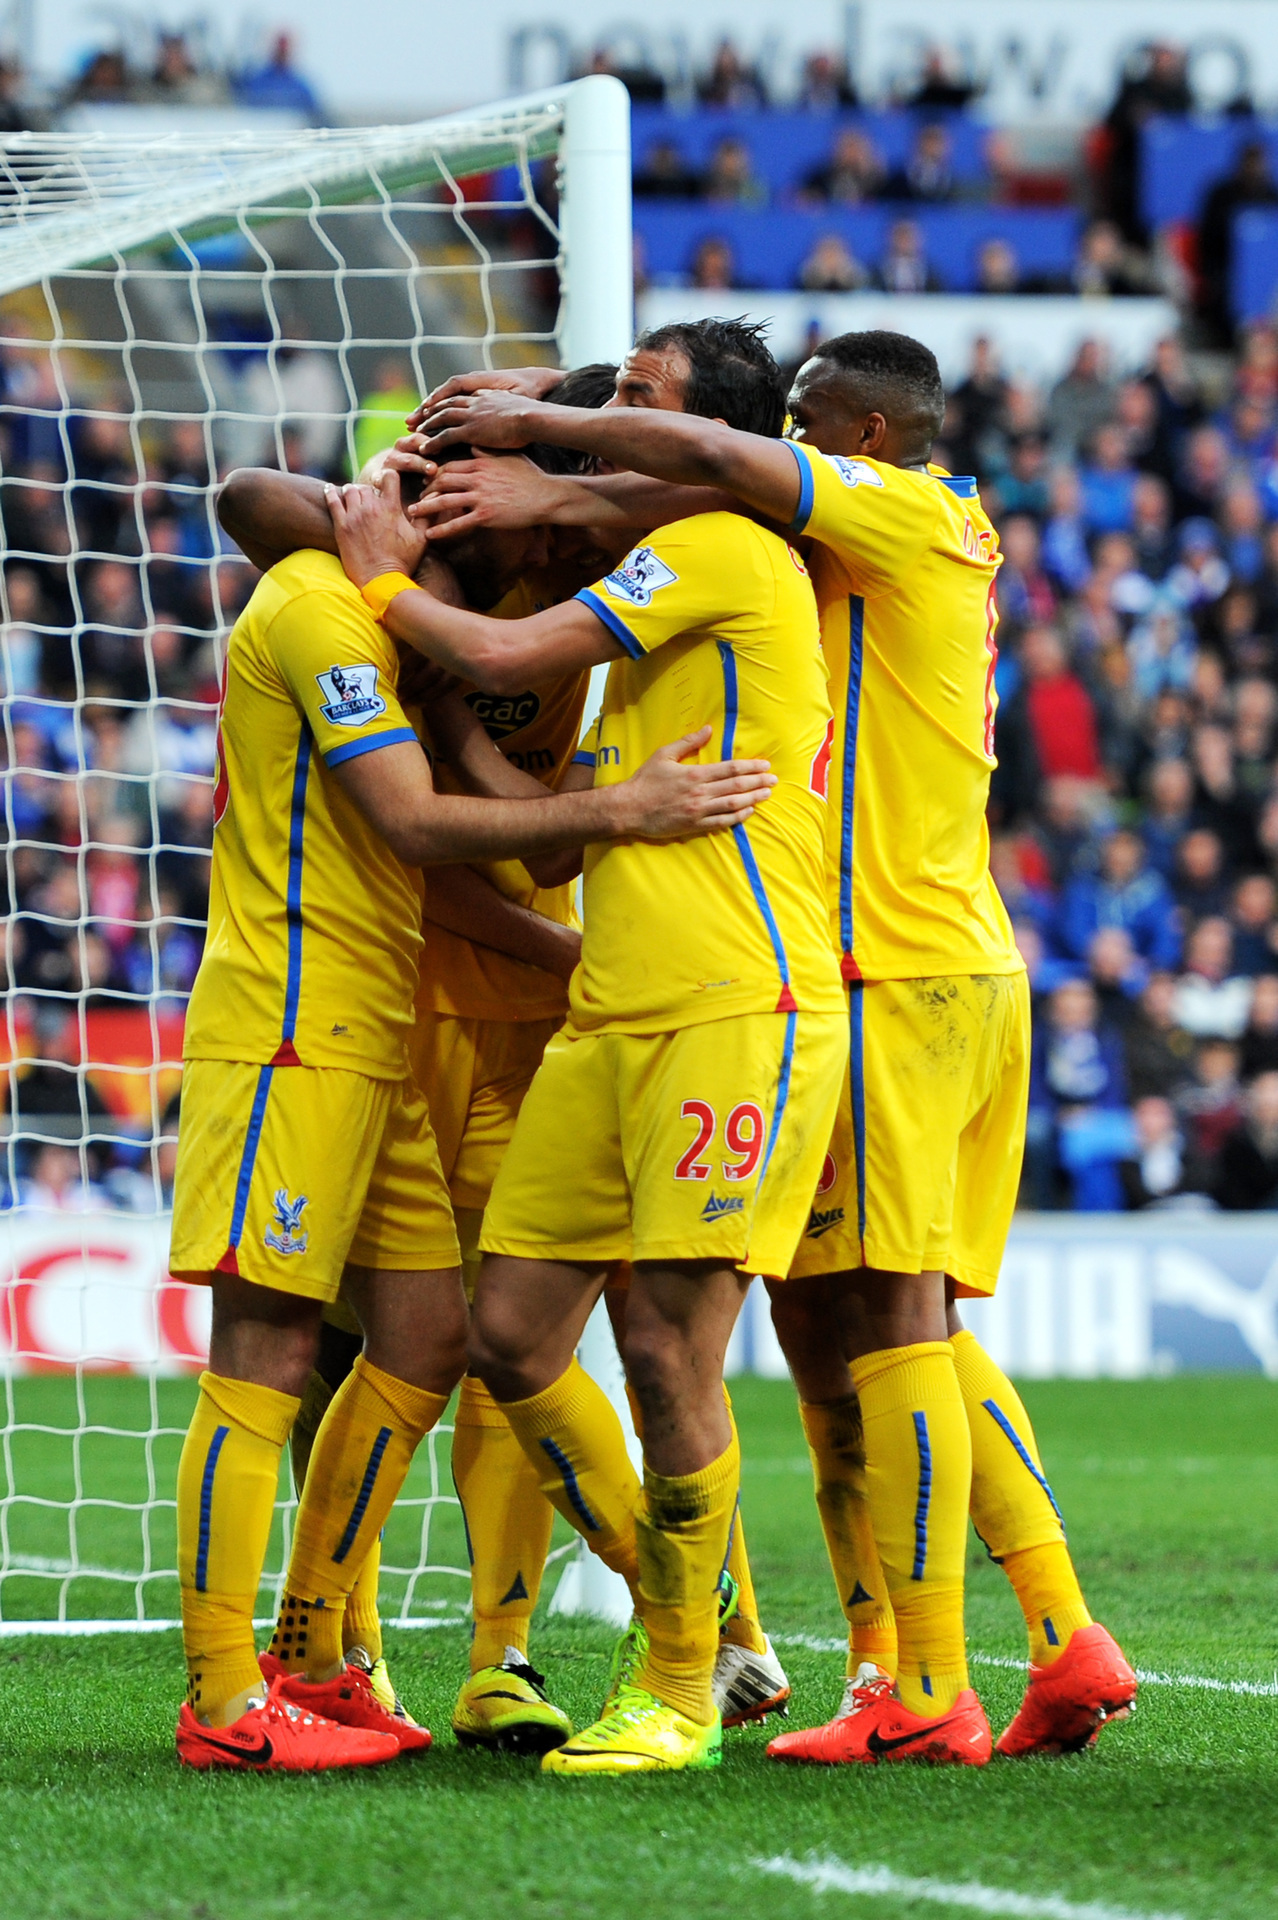 Crystal Palace 3, Cardiff City 0